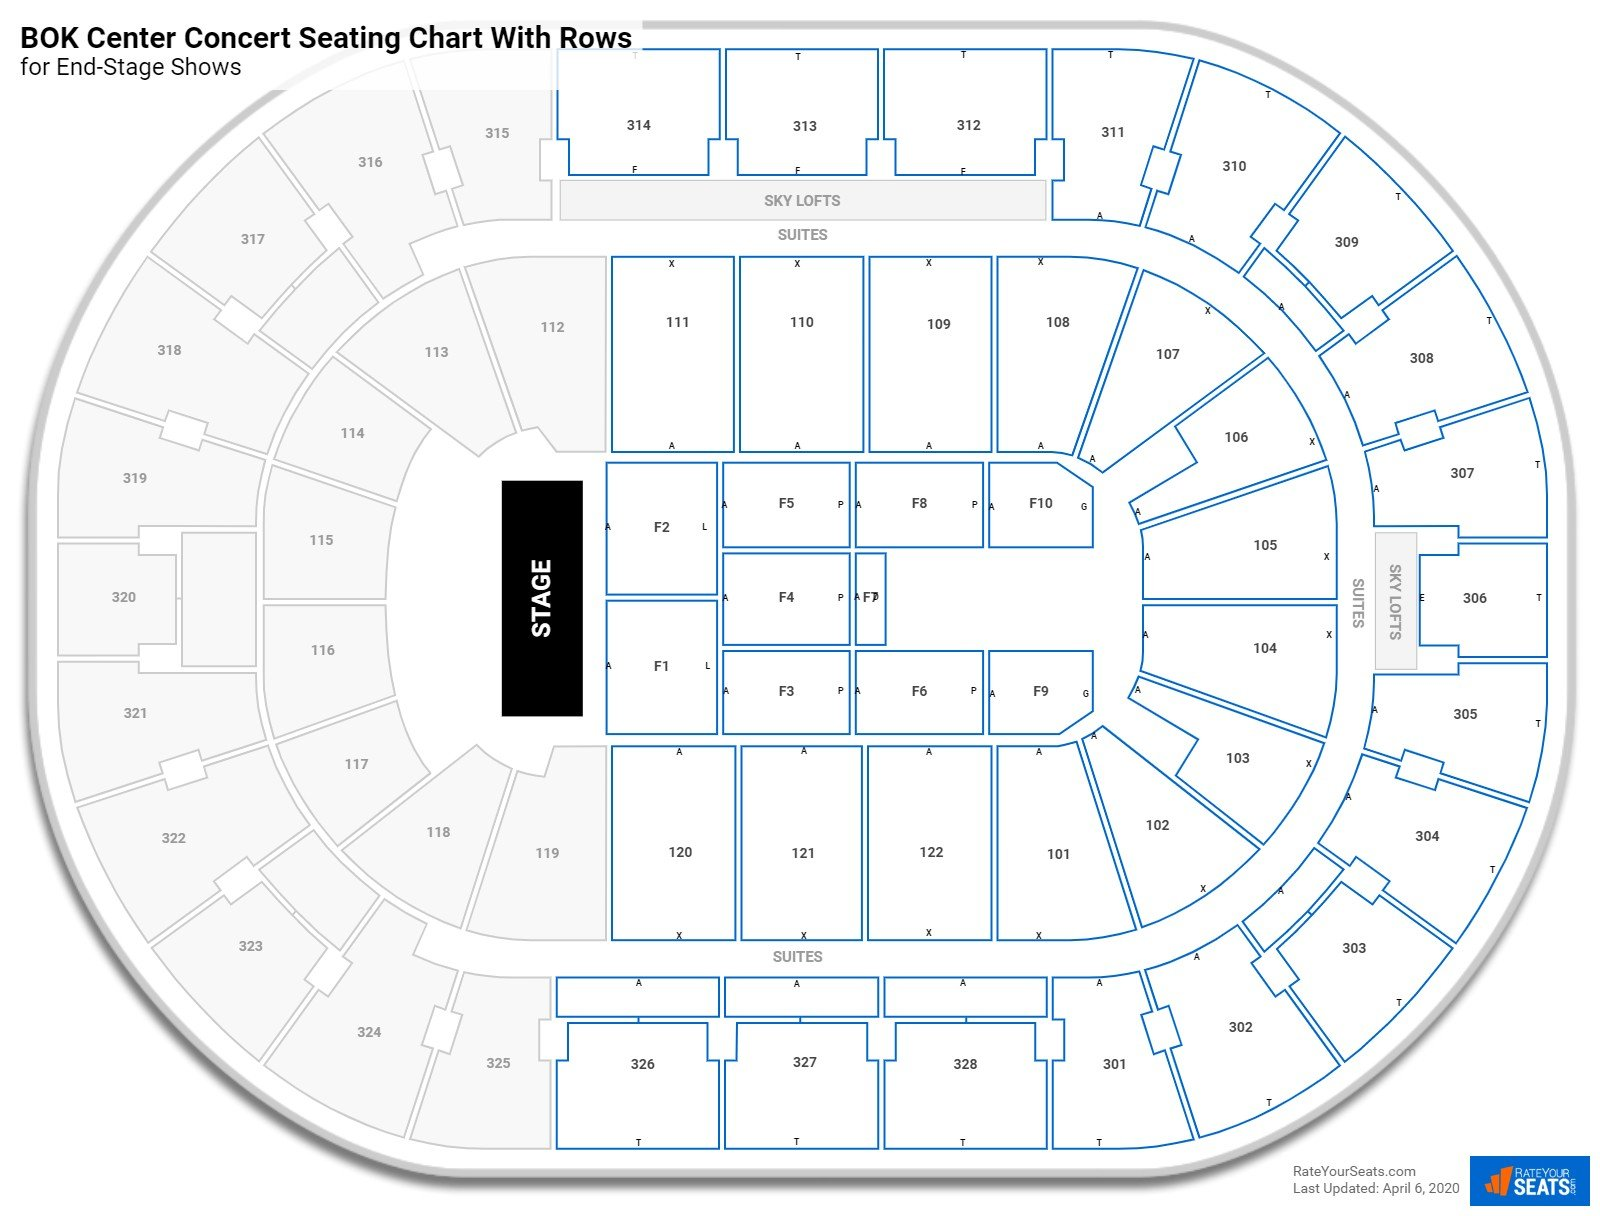 BOK Center seating chart with rows concert